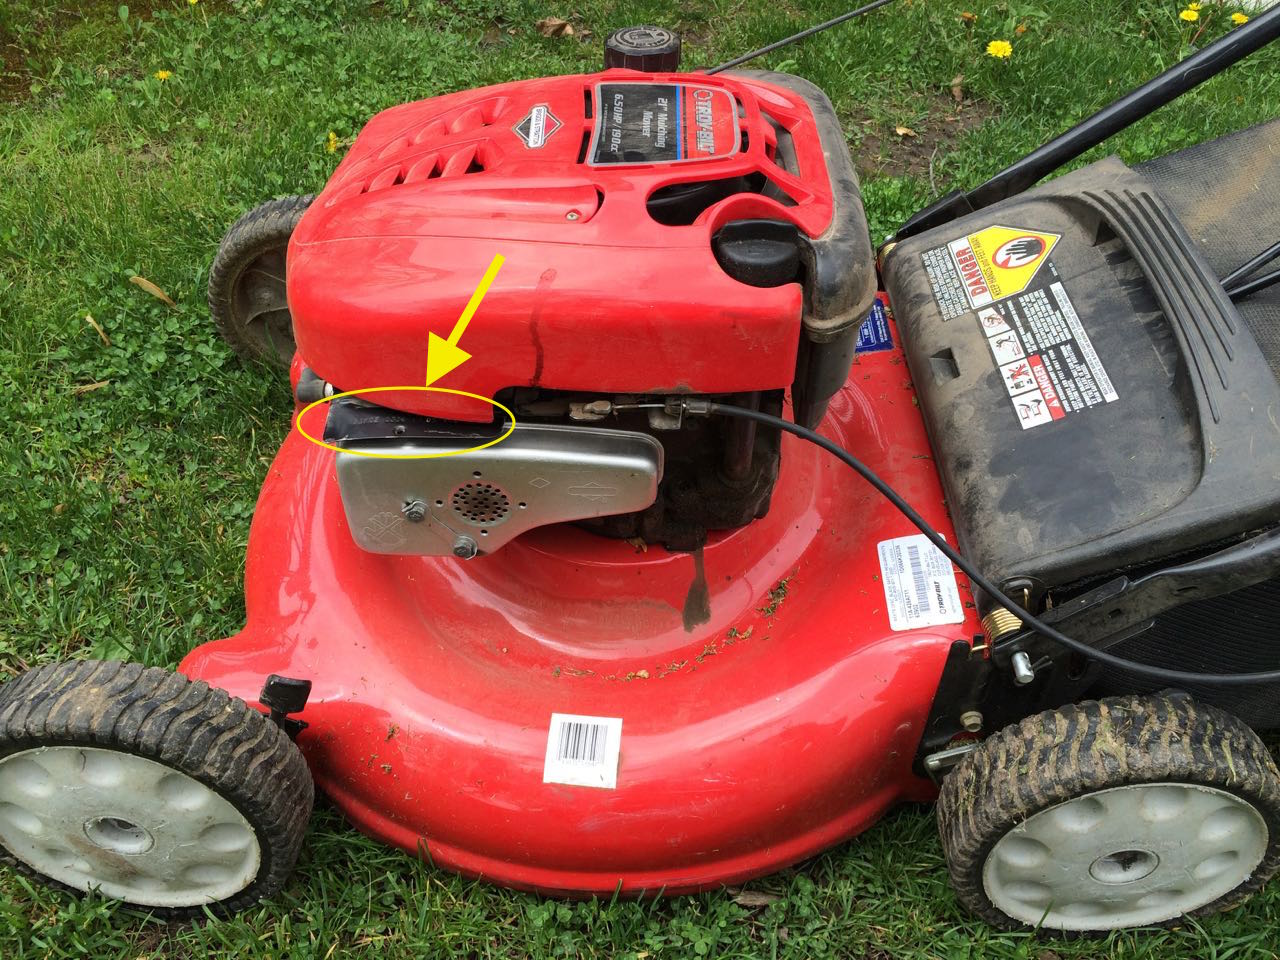 How to change the oil on troy built 21 mulching lawn for Best motor oil for lawn mowers